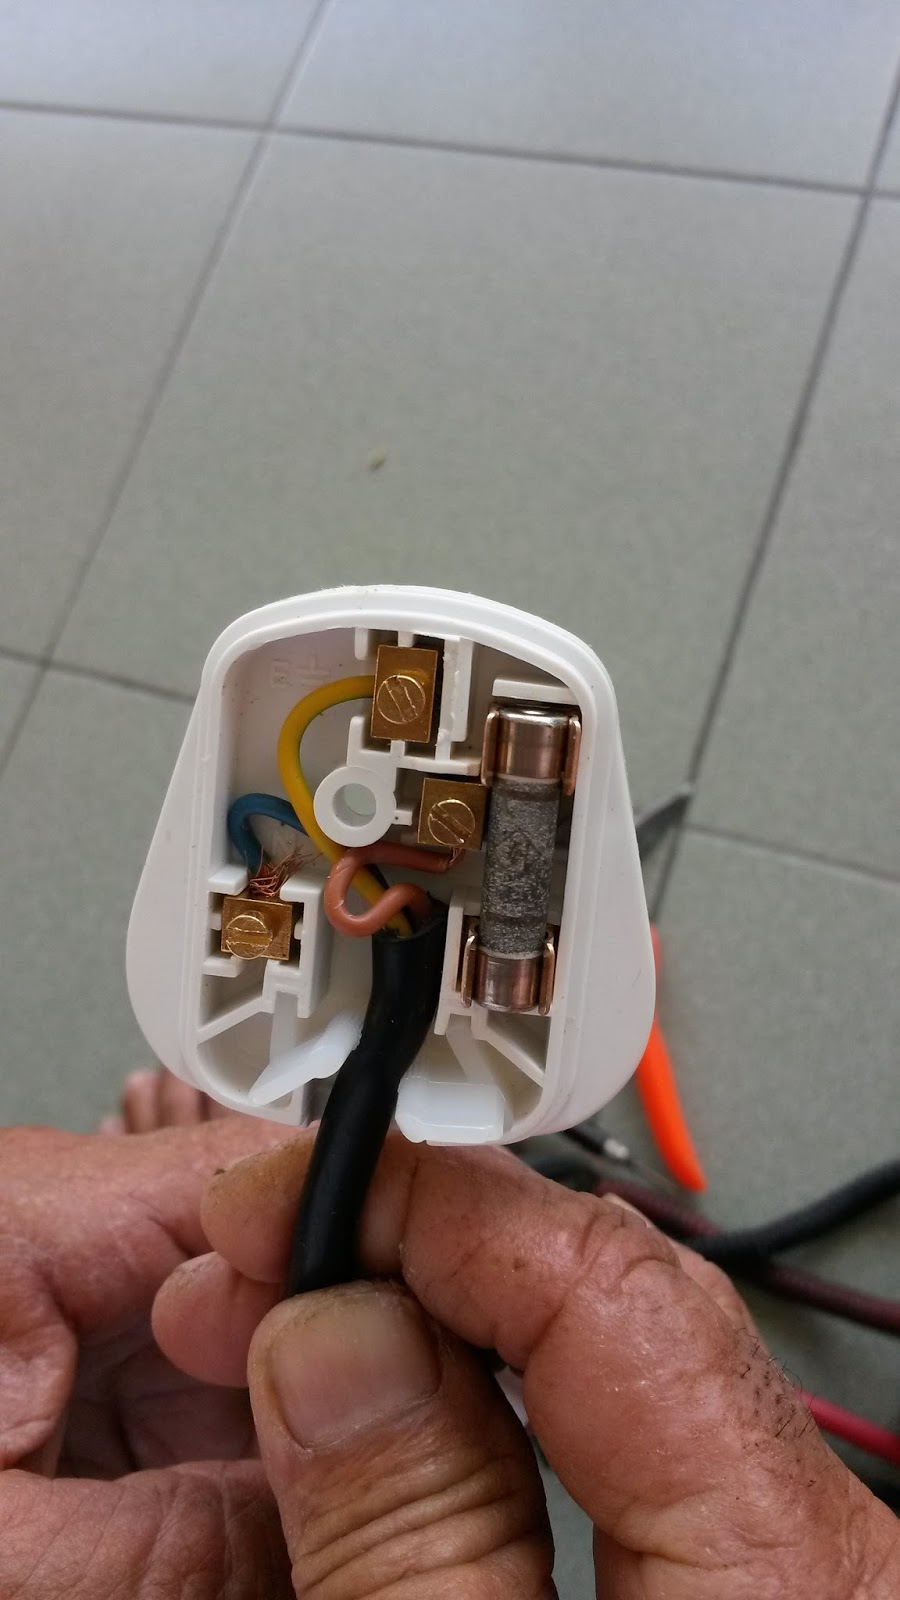 Homemade Foods Inspiration Change China 3 Pin Plug To Malaysia Wiring Electrical Plugs Uk 220v 250v And Into Your Seed Electric Lunch Box Below Is The Picture Illustration I My Original